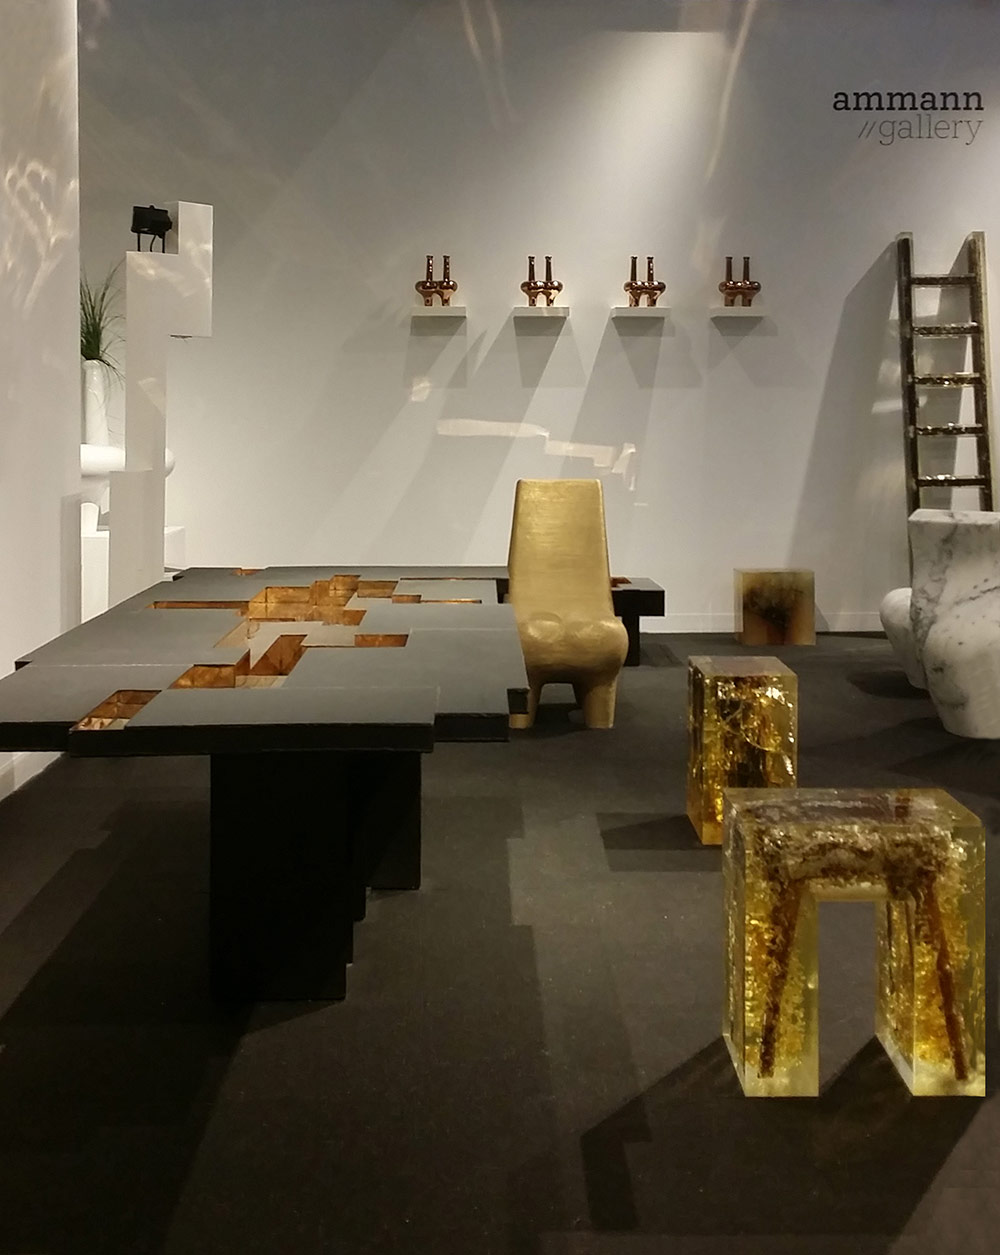 art basel, design miami, design, collectors, gallerists, designers, curators, design galleries, contemporary design, design event, carpenters workshop gallery, design miami Design Miami/ Basel 2018: The Best Design Galleries ammann gallery